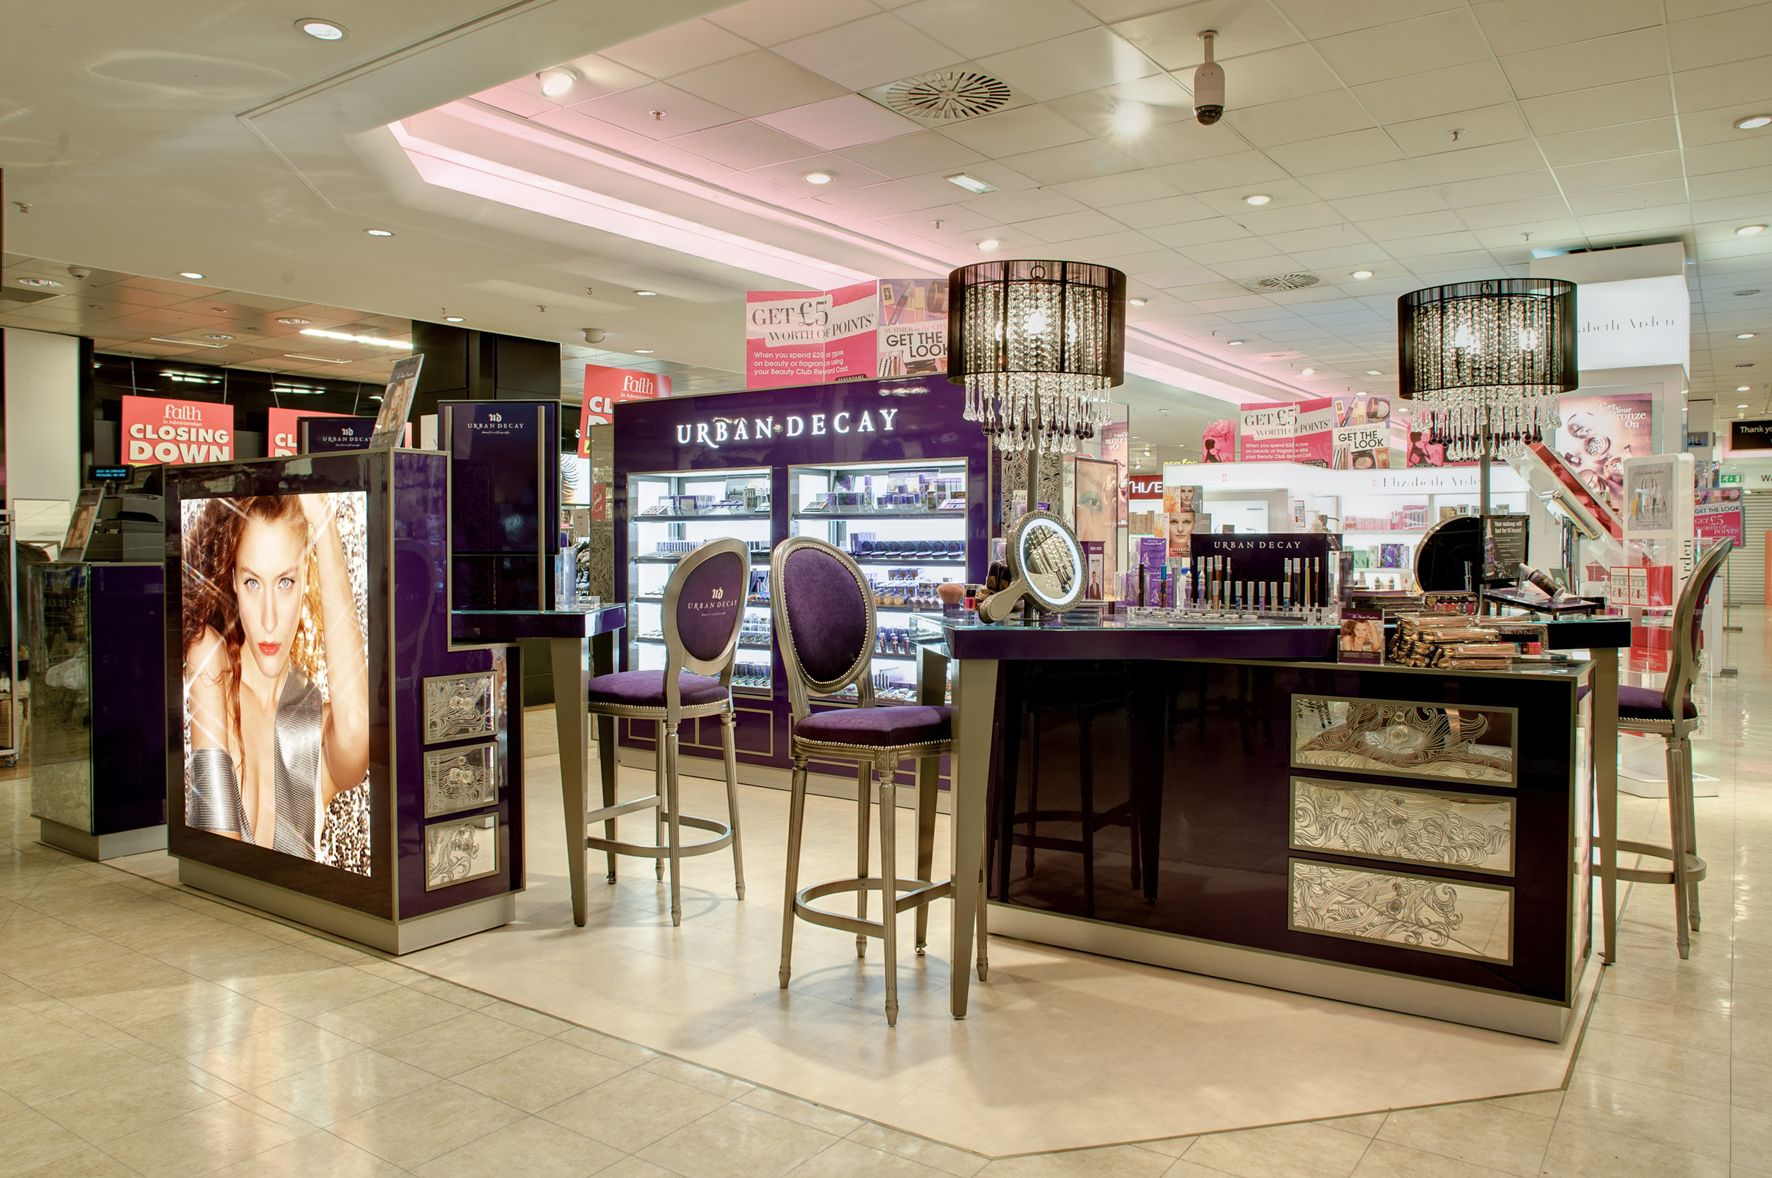 Urban Decay Gets New Look In Store From Retail Design Firm